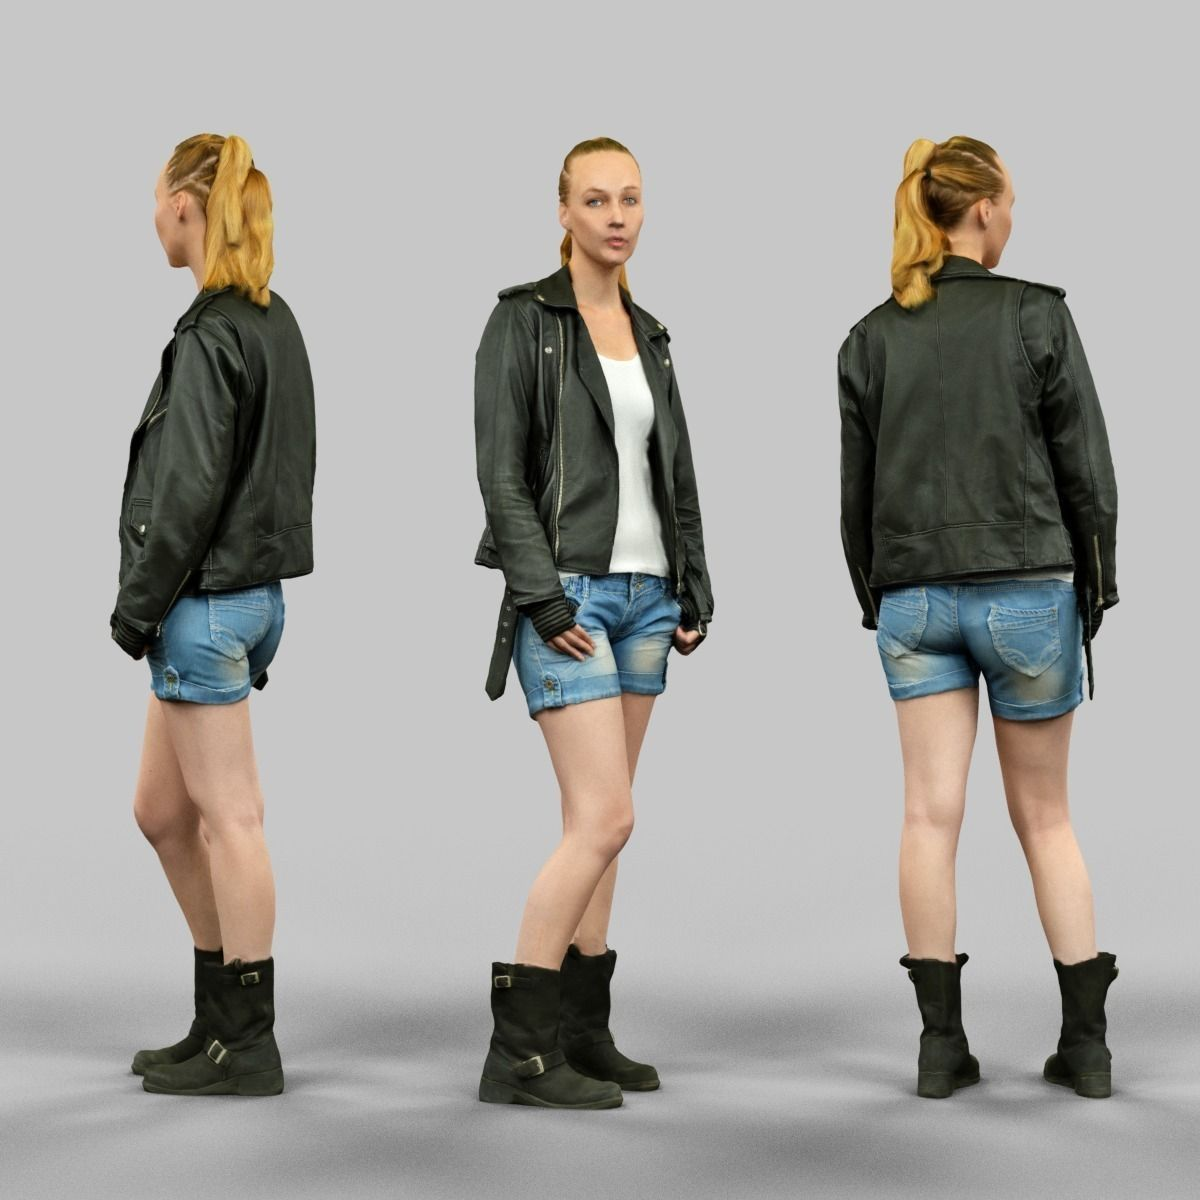 Woman wearing Leather Jacket and shorts